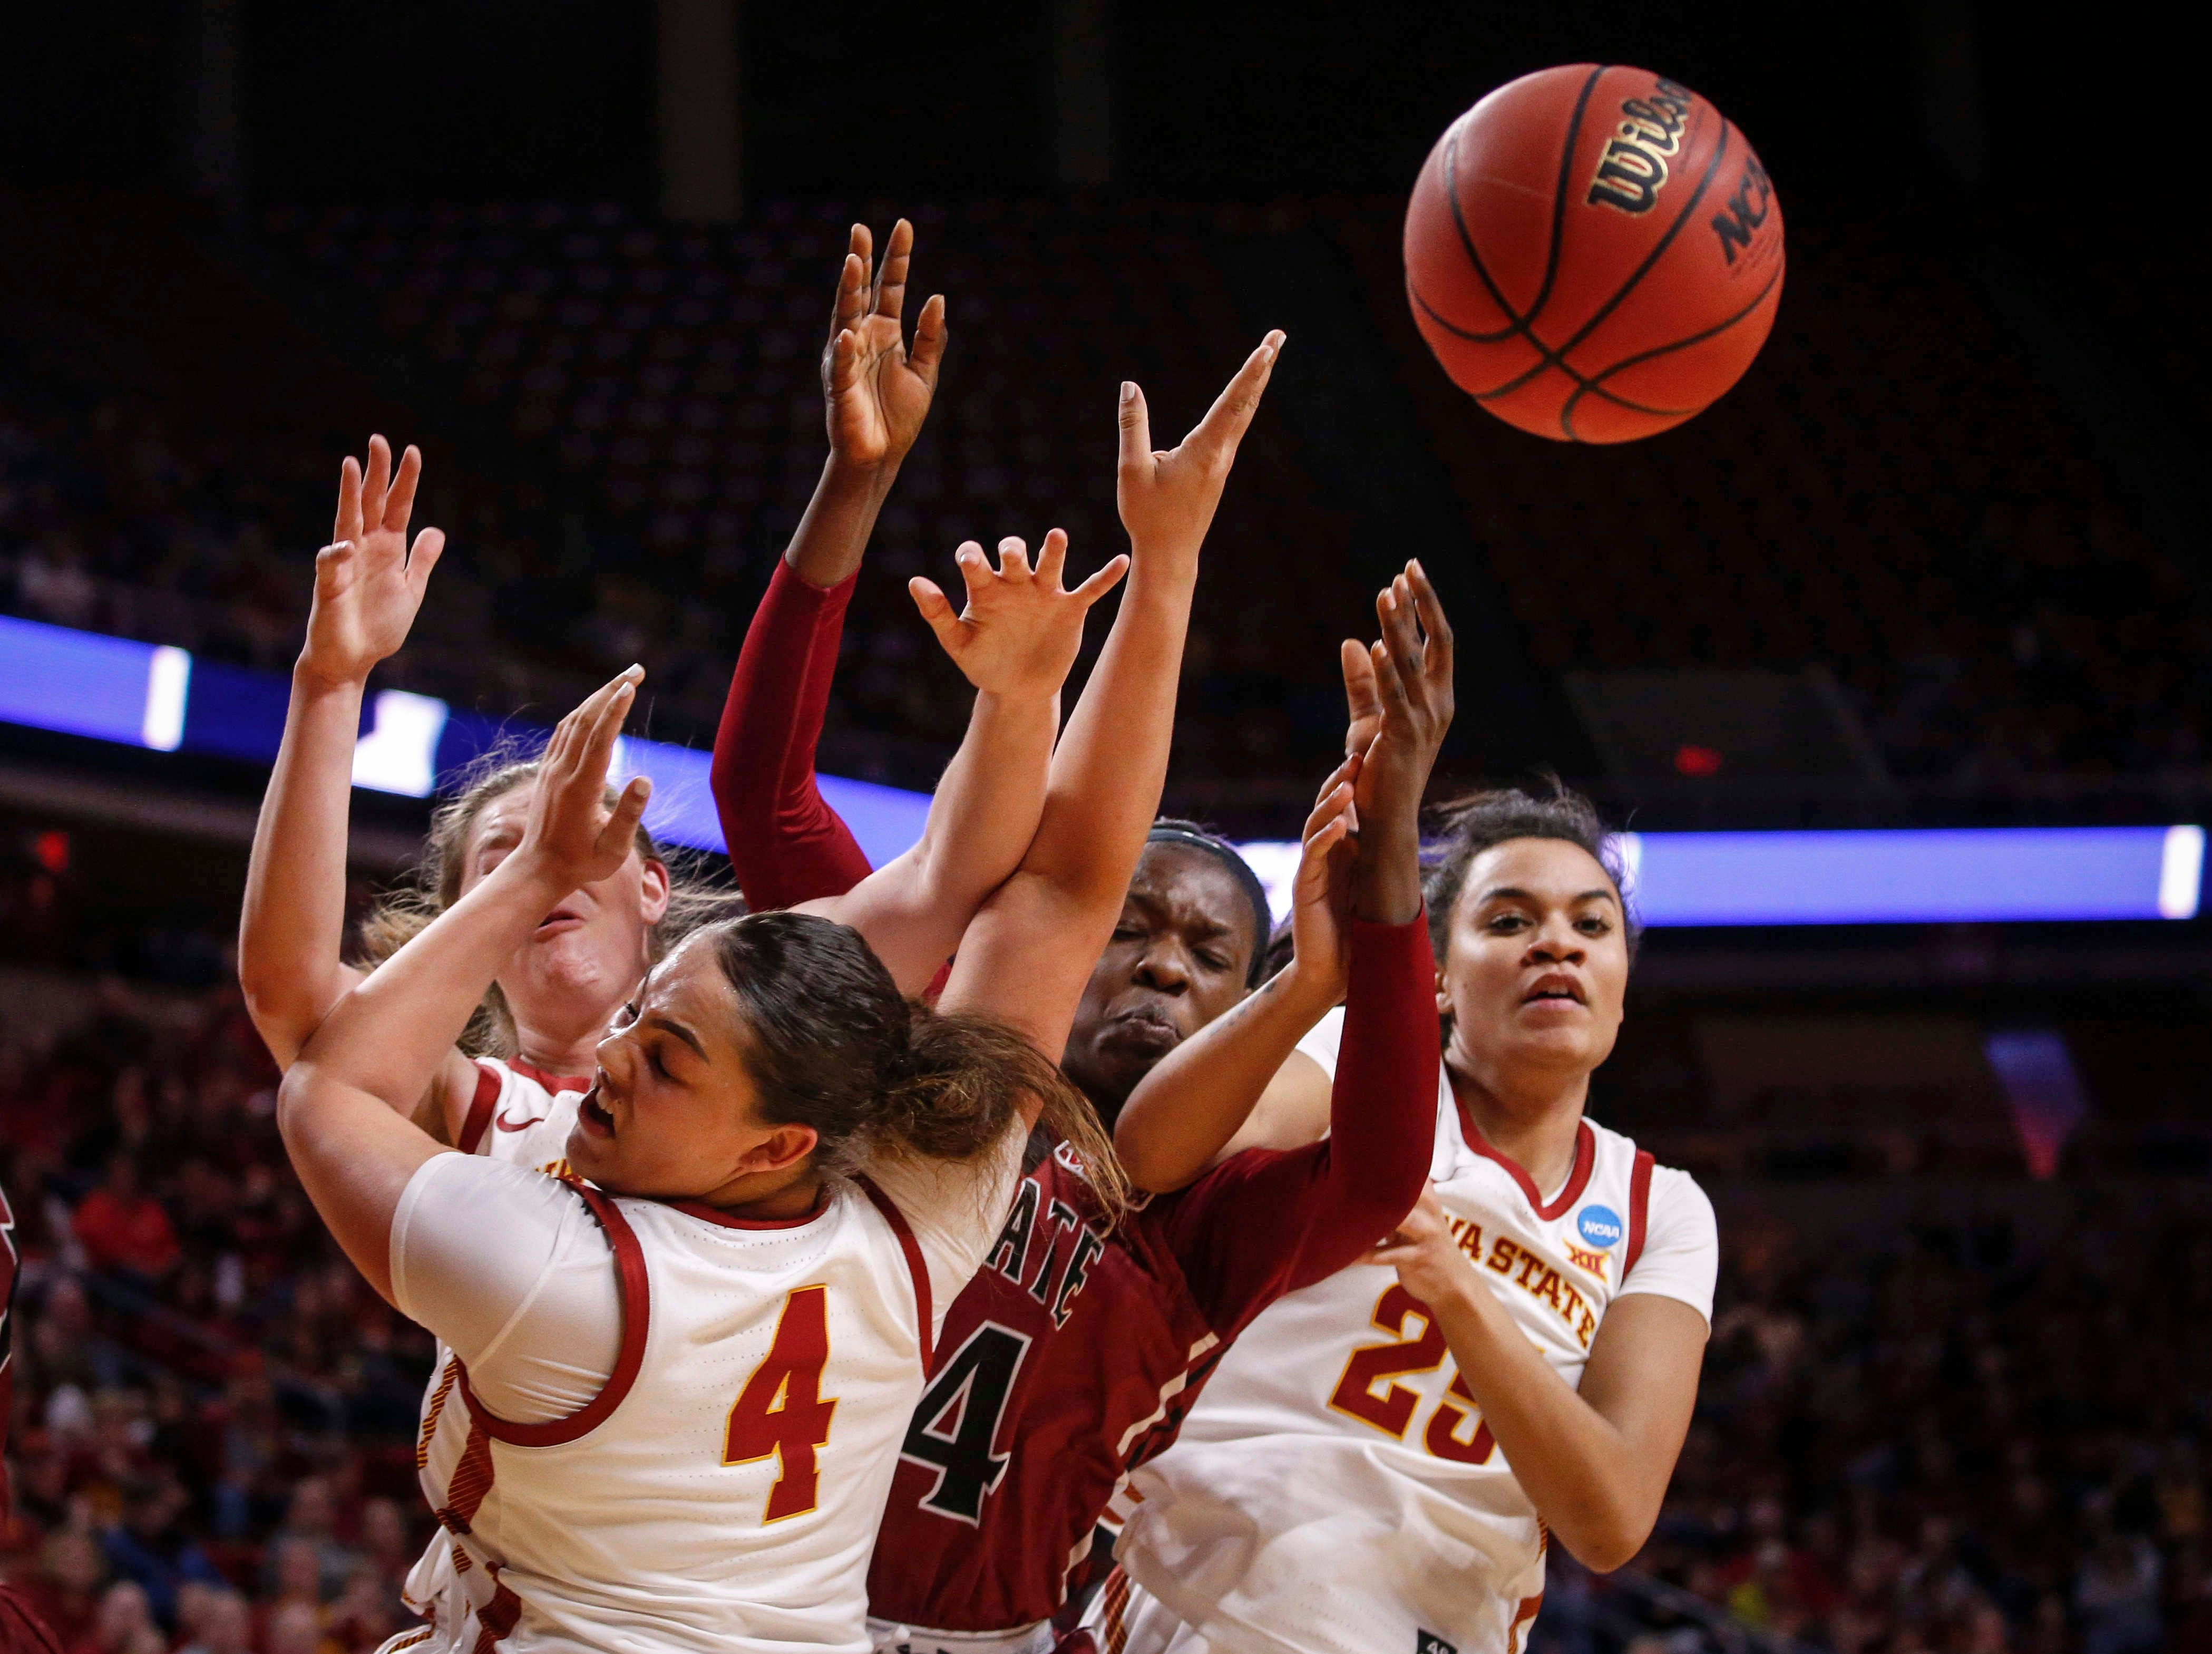 Members of the Iowa State basketball team battle New Mexico State's Adenike Aderinto for the loose ball in the fourth quarter on Saturday, March 23, 2019, at Hilton Coliseum in Ames.